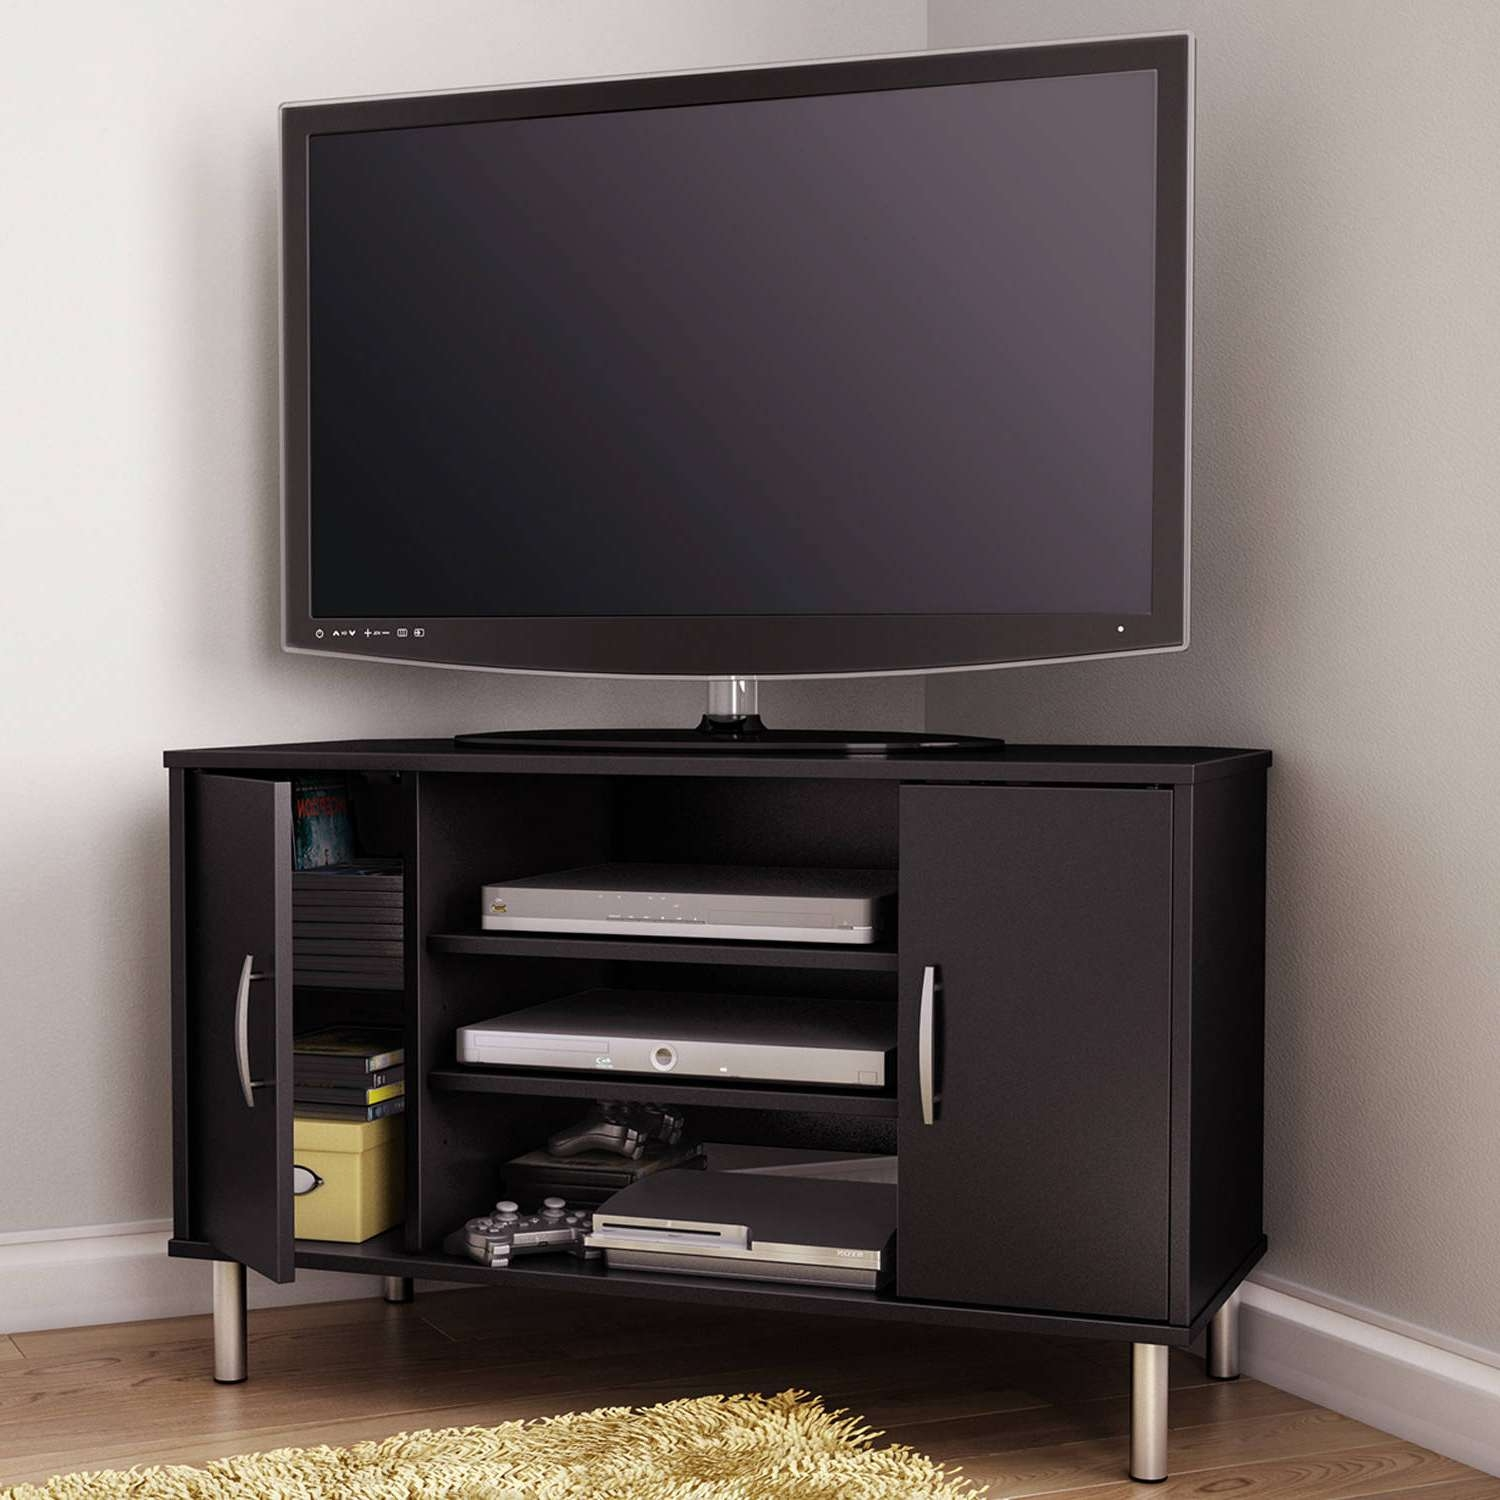 Corner Tv Stand Ikea – Corner Tv Stand Design With Various Cabinet Within Black Corner Tv Cabinets (View 8 of 20)